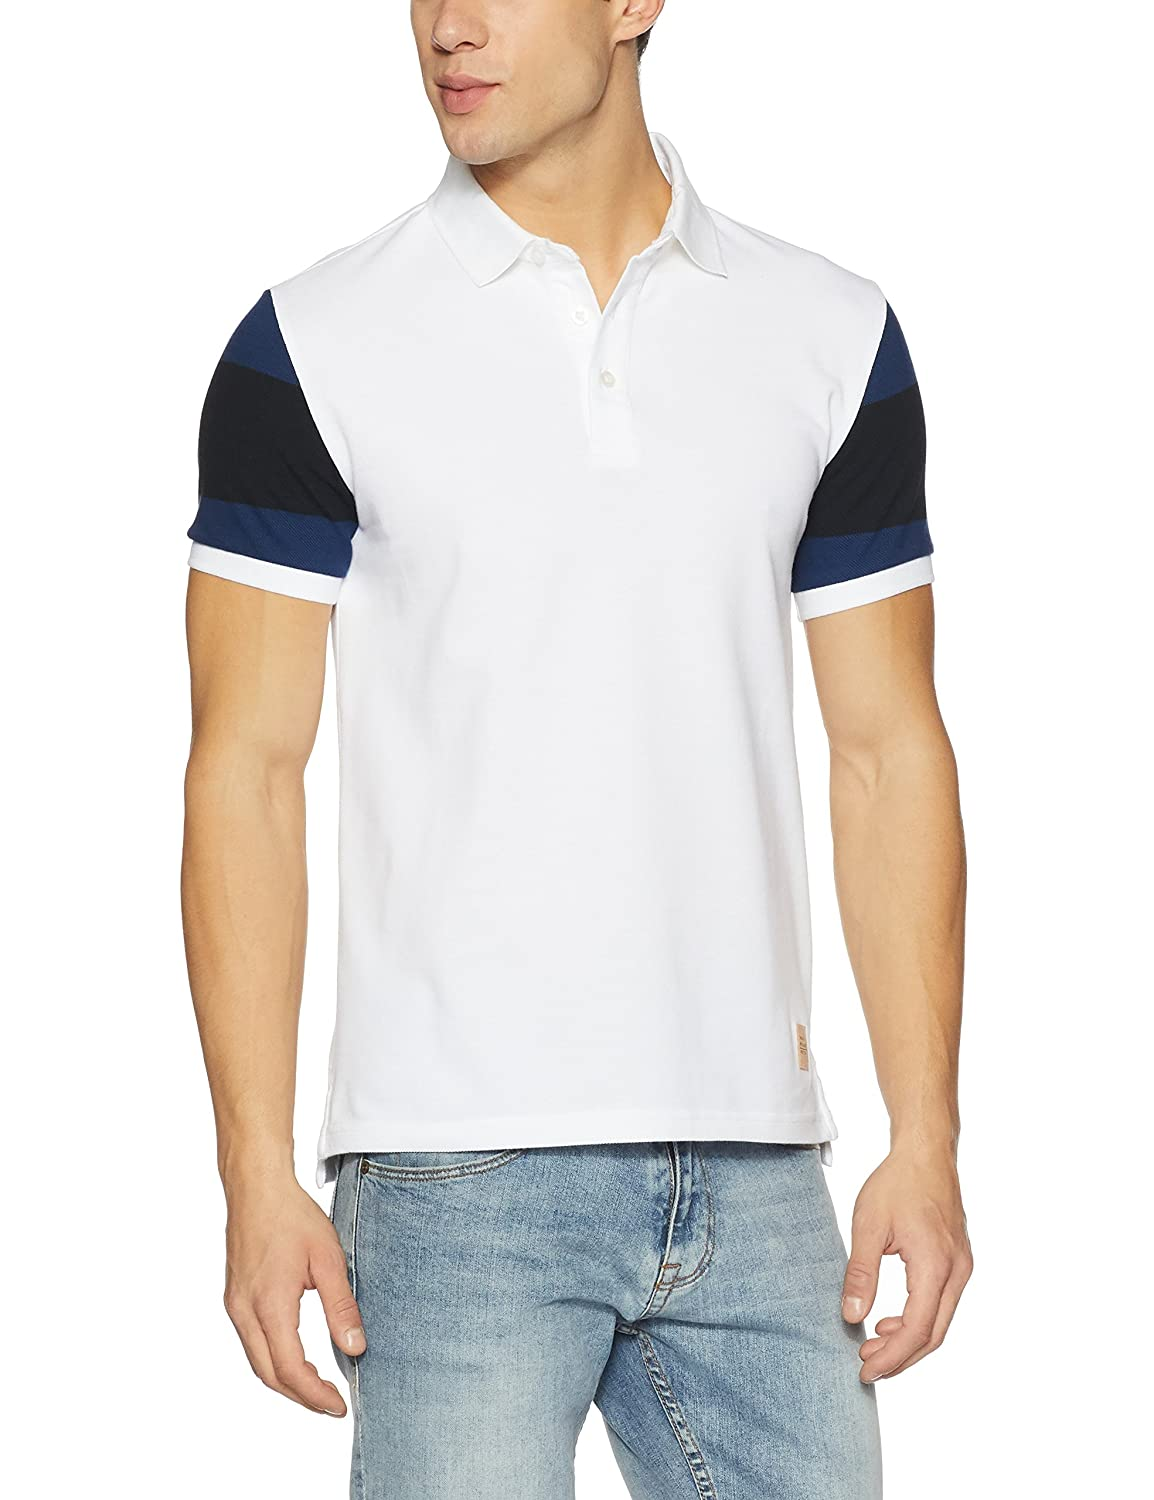 United Colors of Benetton Men's Striped Regular Fit Cotton Polo